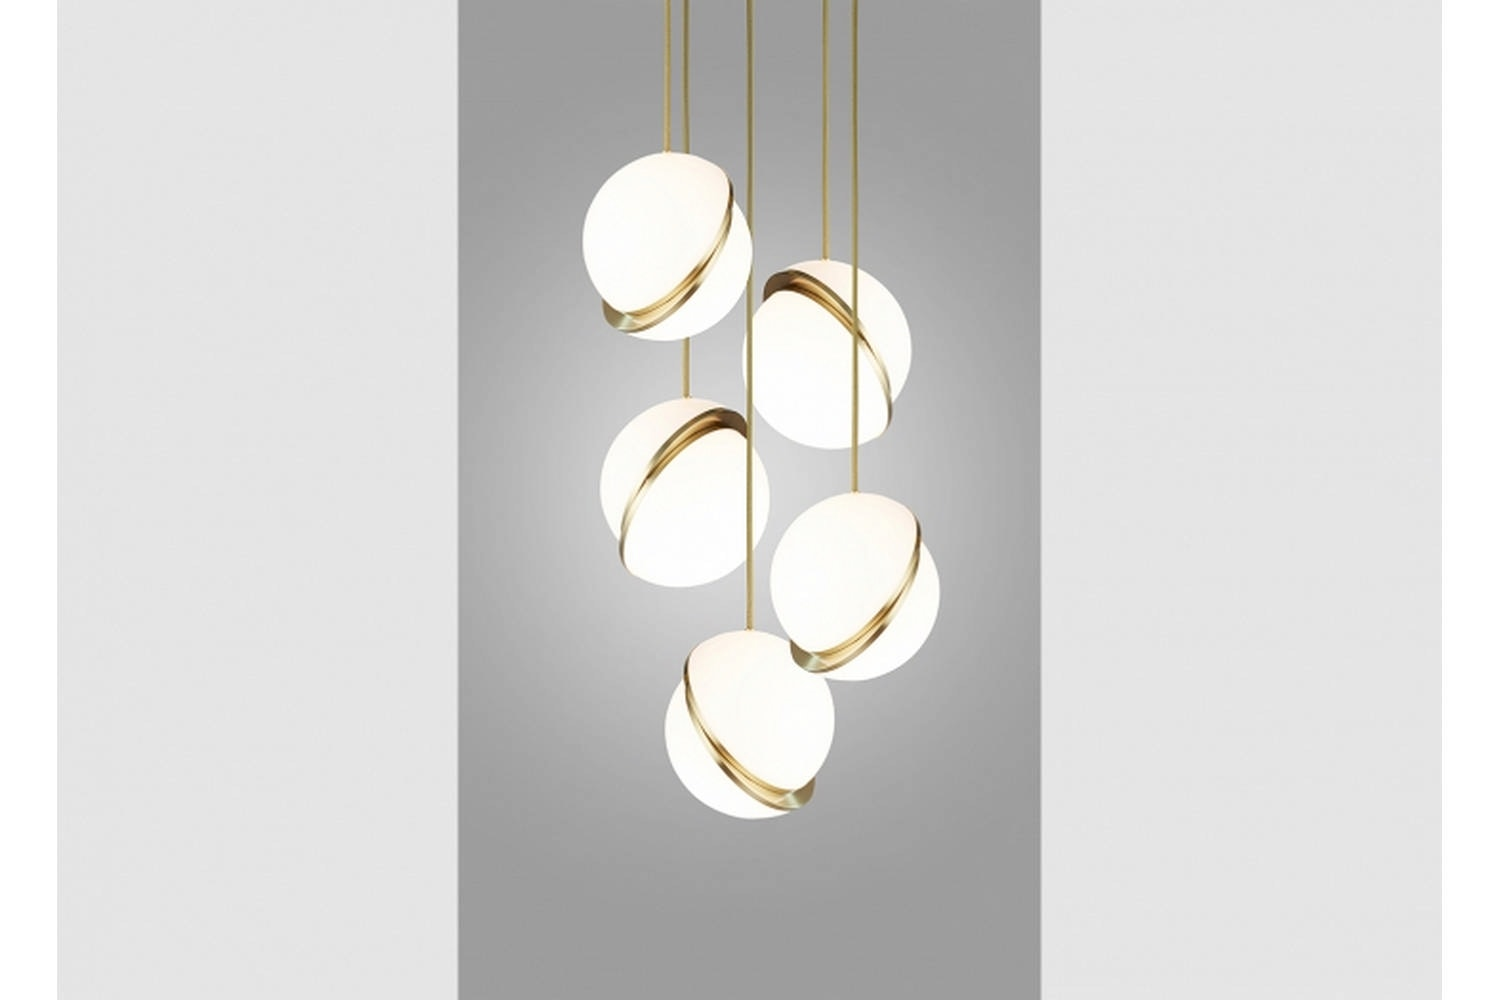 Mini Crescent Chandelier 5 Piece by Lee Broom